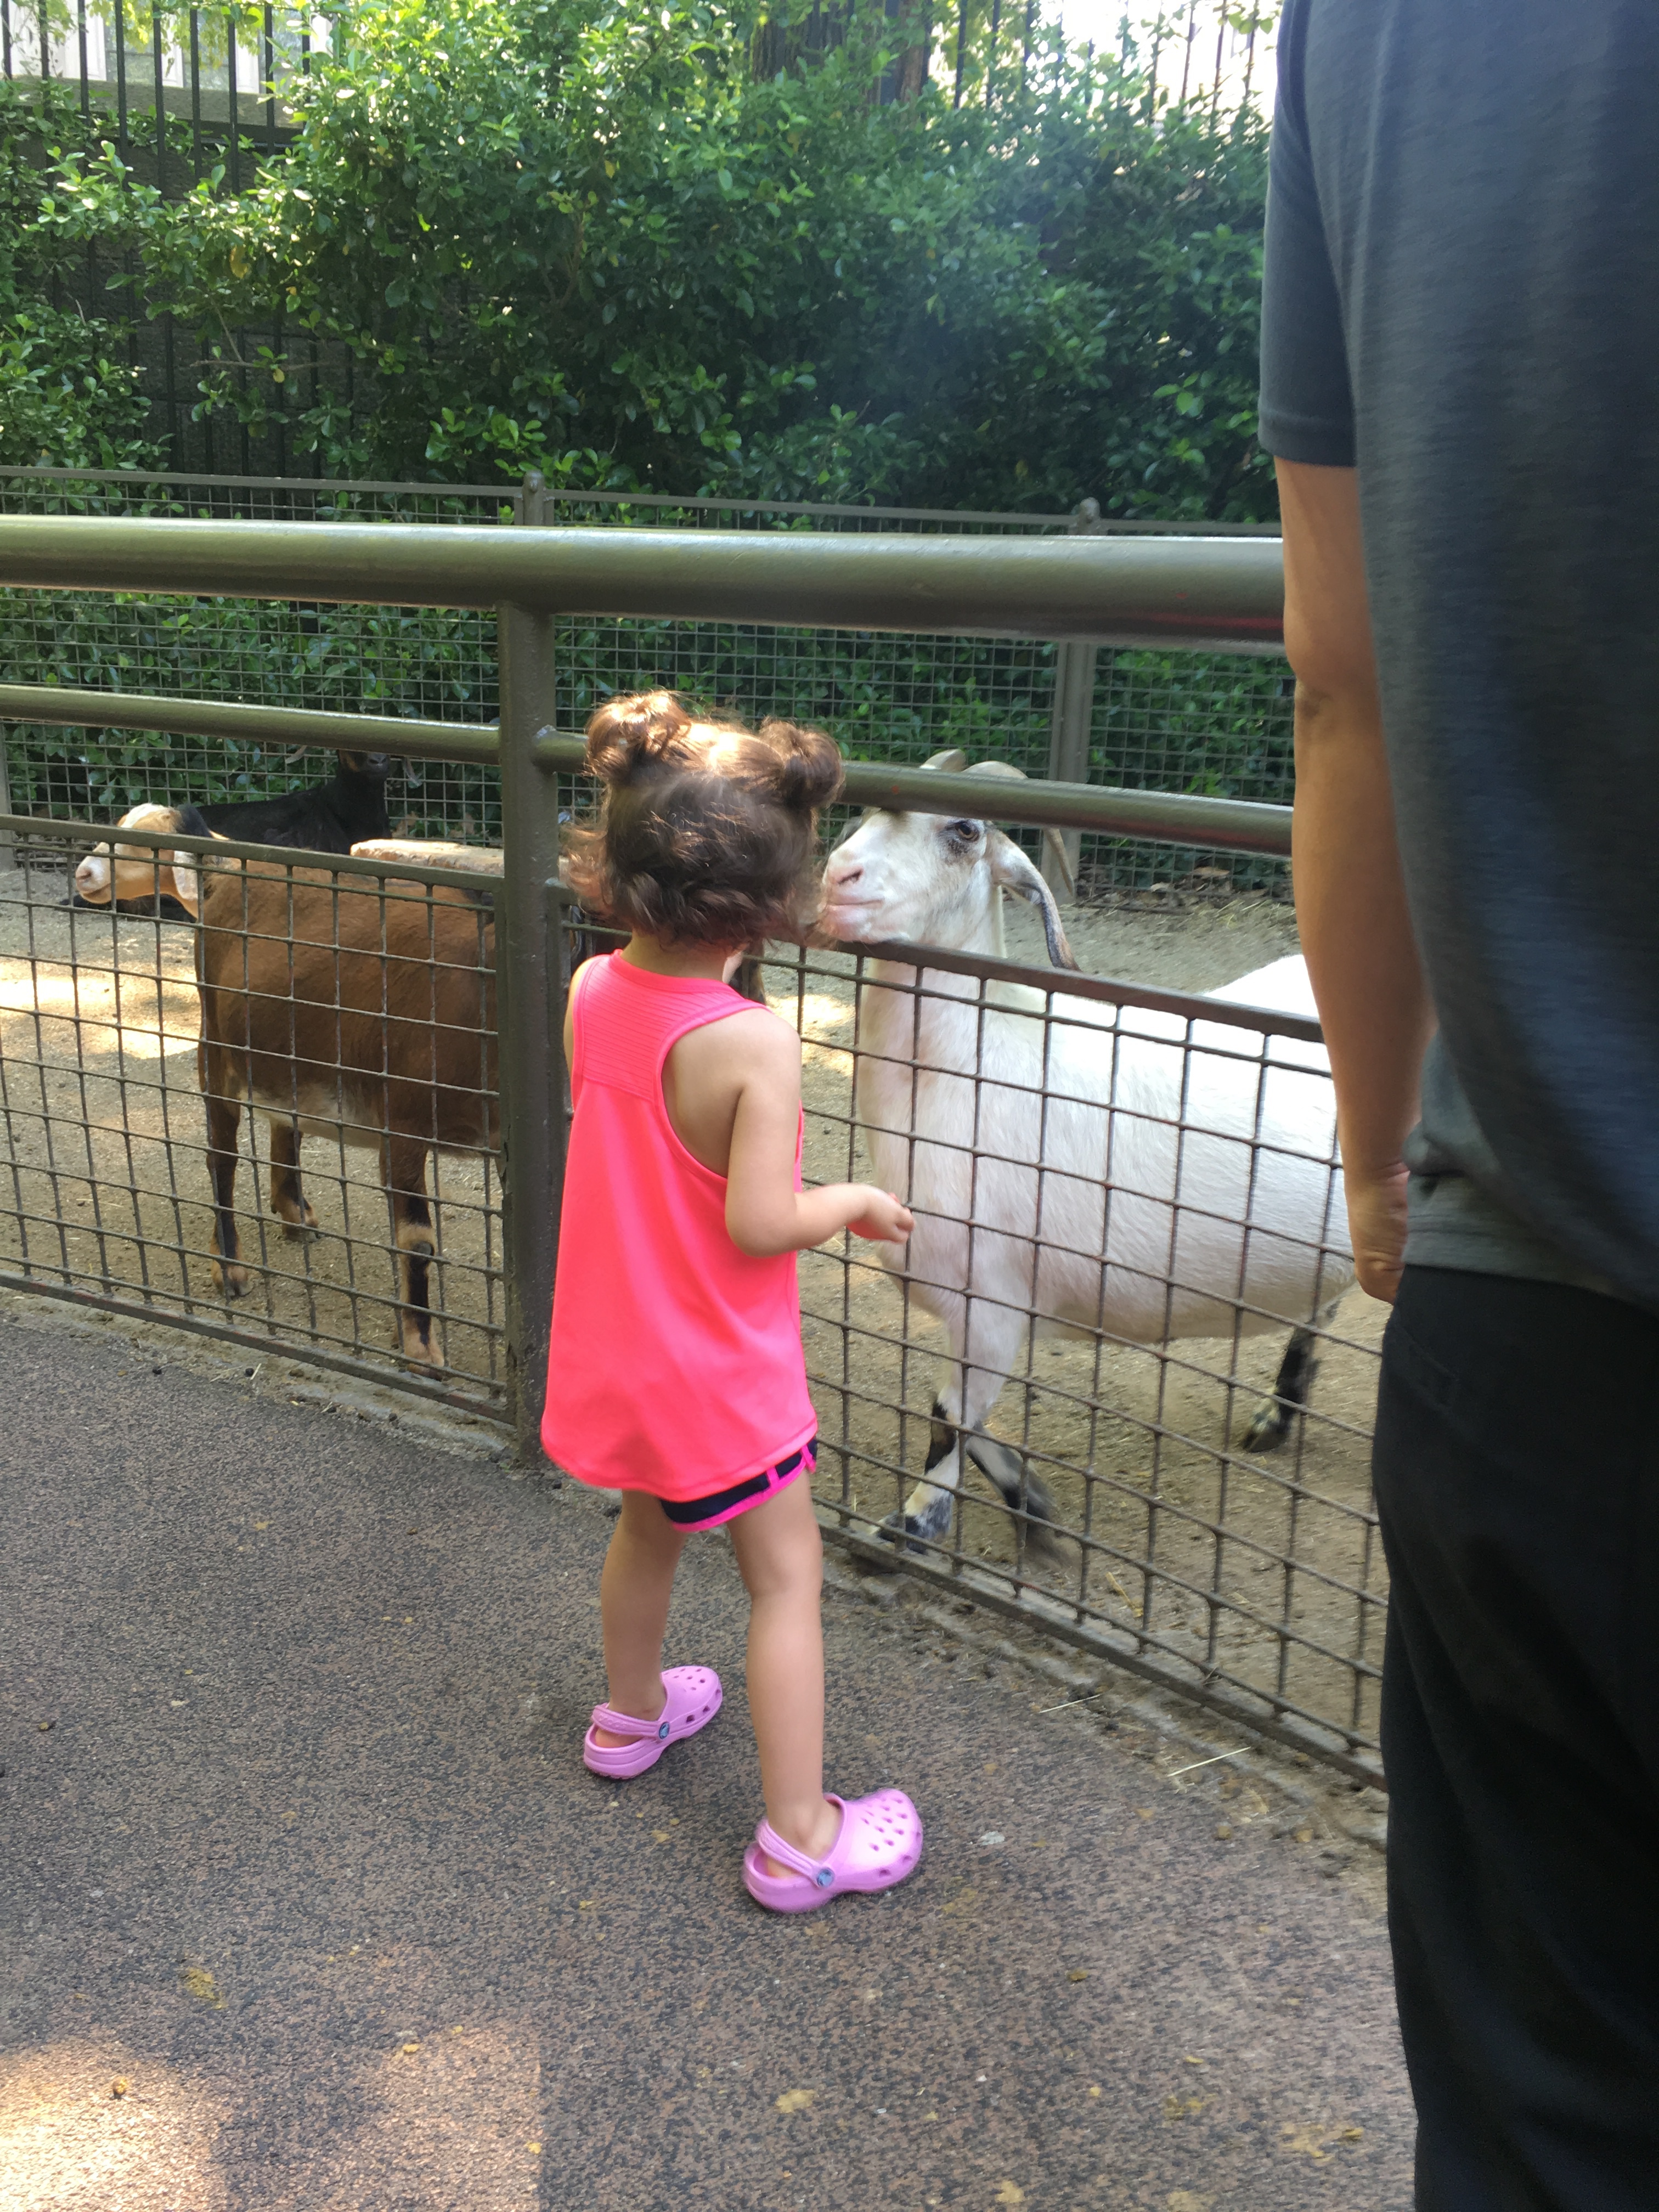 NYC Itinerary: Central Park Zoo